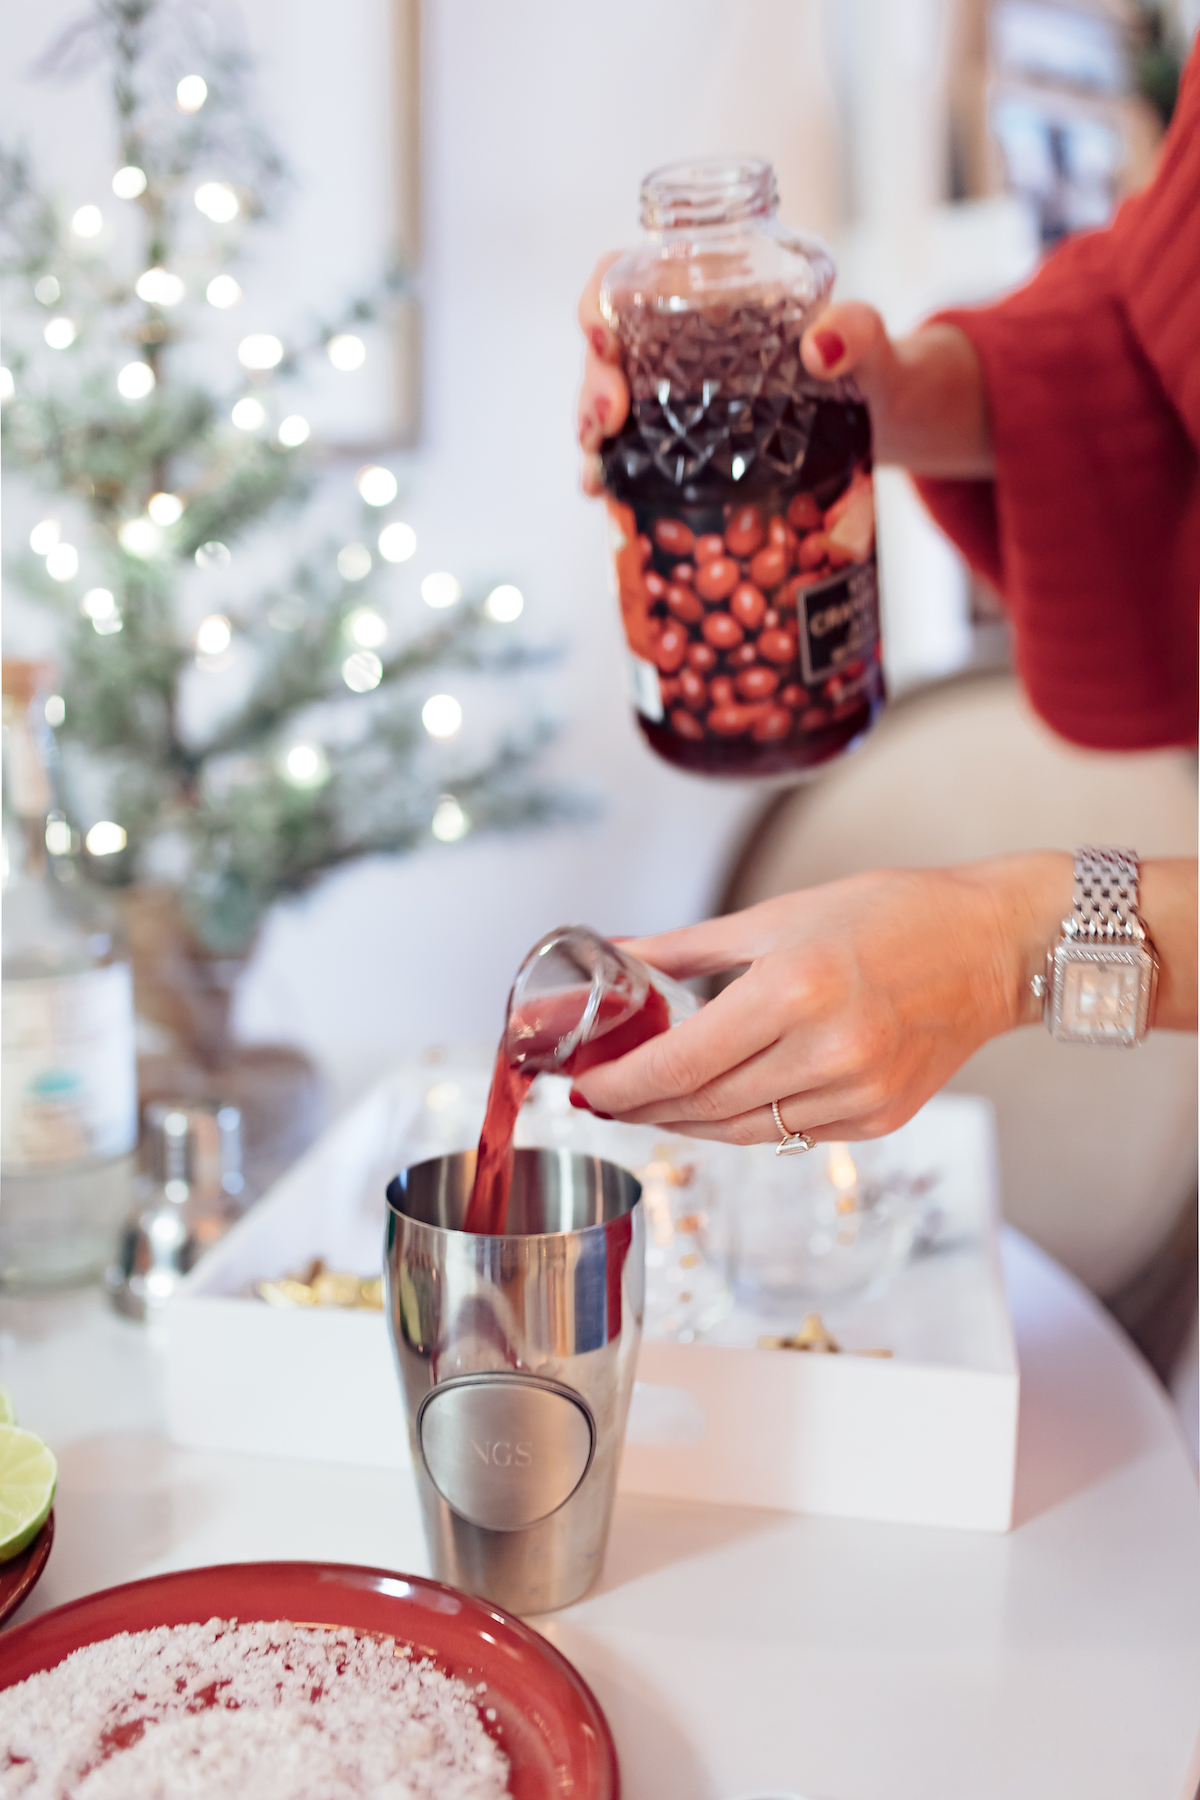 Cranberry Orange Holiday Margarita Recipe